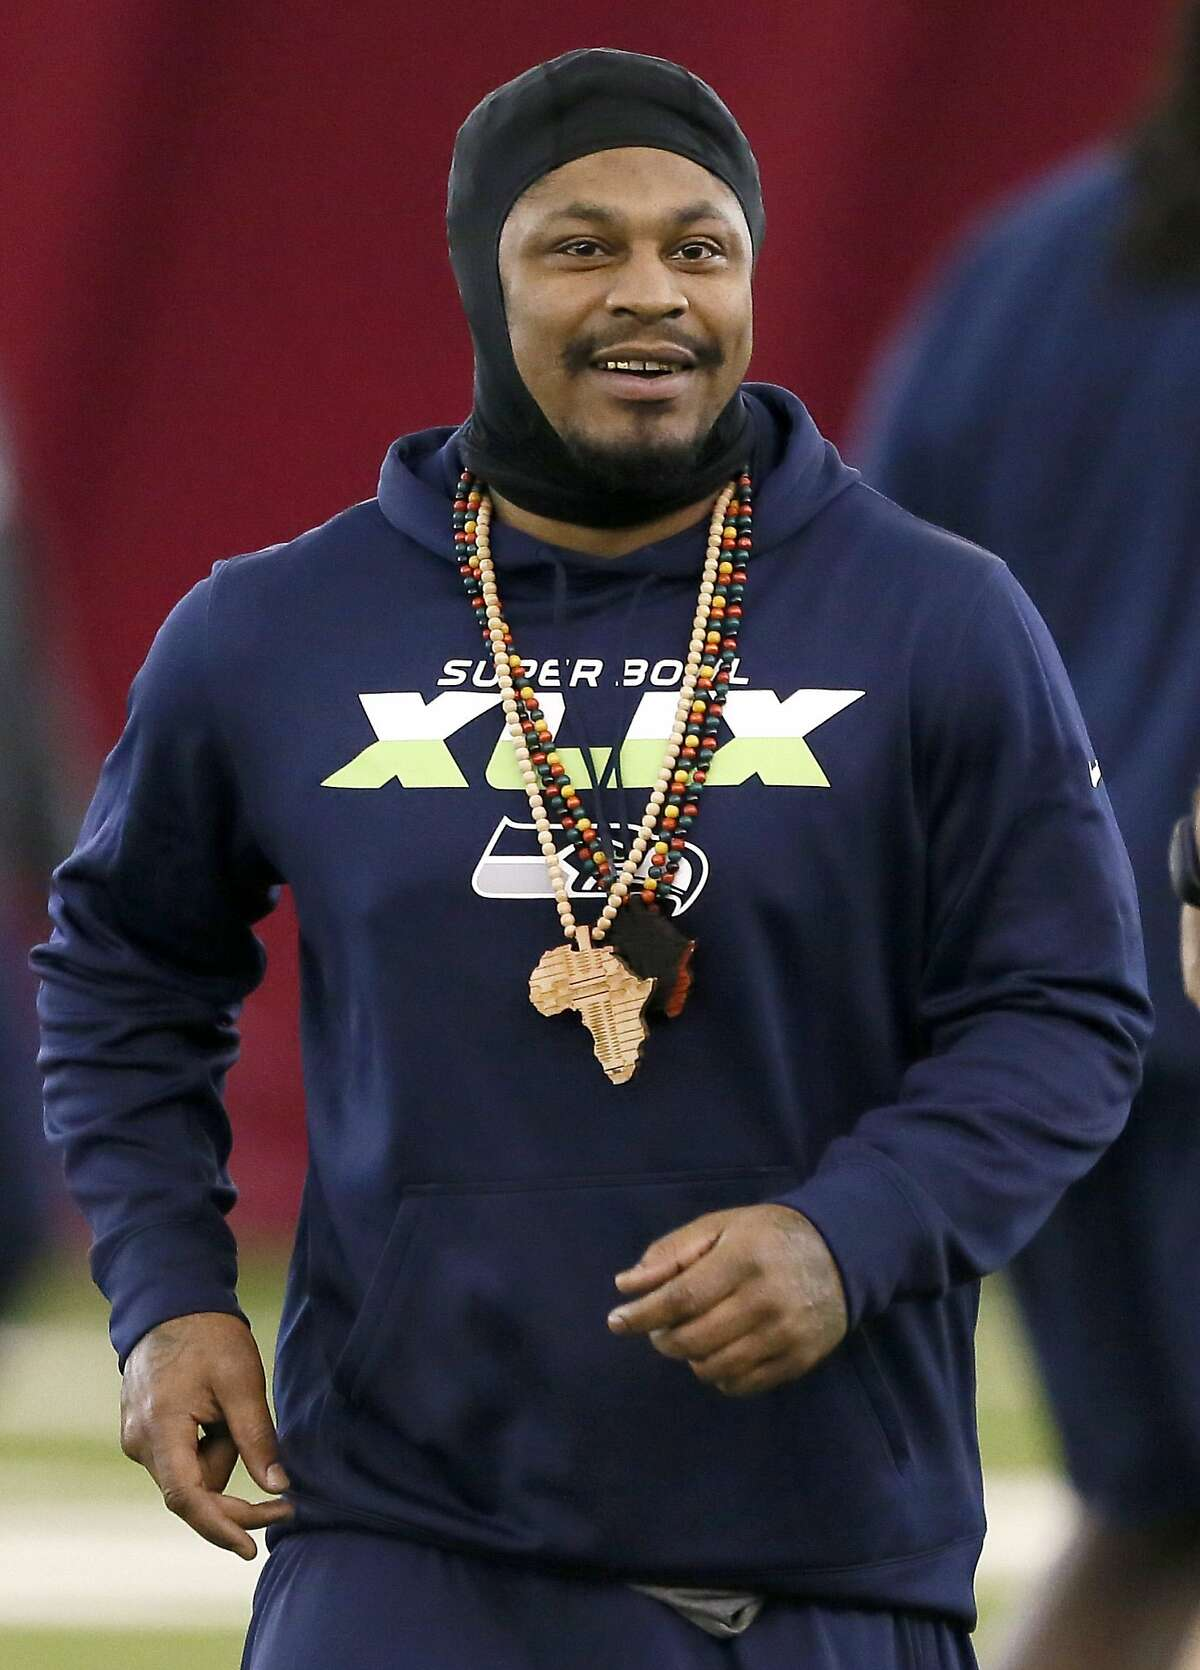 Seattle Seahawks' Marshawn Lynch smiles during a team walk through for NFL Super Bowl XLIX football game, Saturday, Jan. 31, 2015, in Tempe, Ariz. The Seahawks play the New England Patriots in Super Bowl XLIX on Sunday, Feb. 1, 2015. (AP Photo/Matt York)